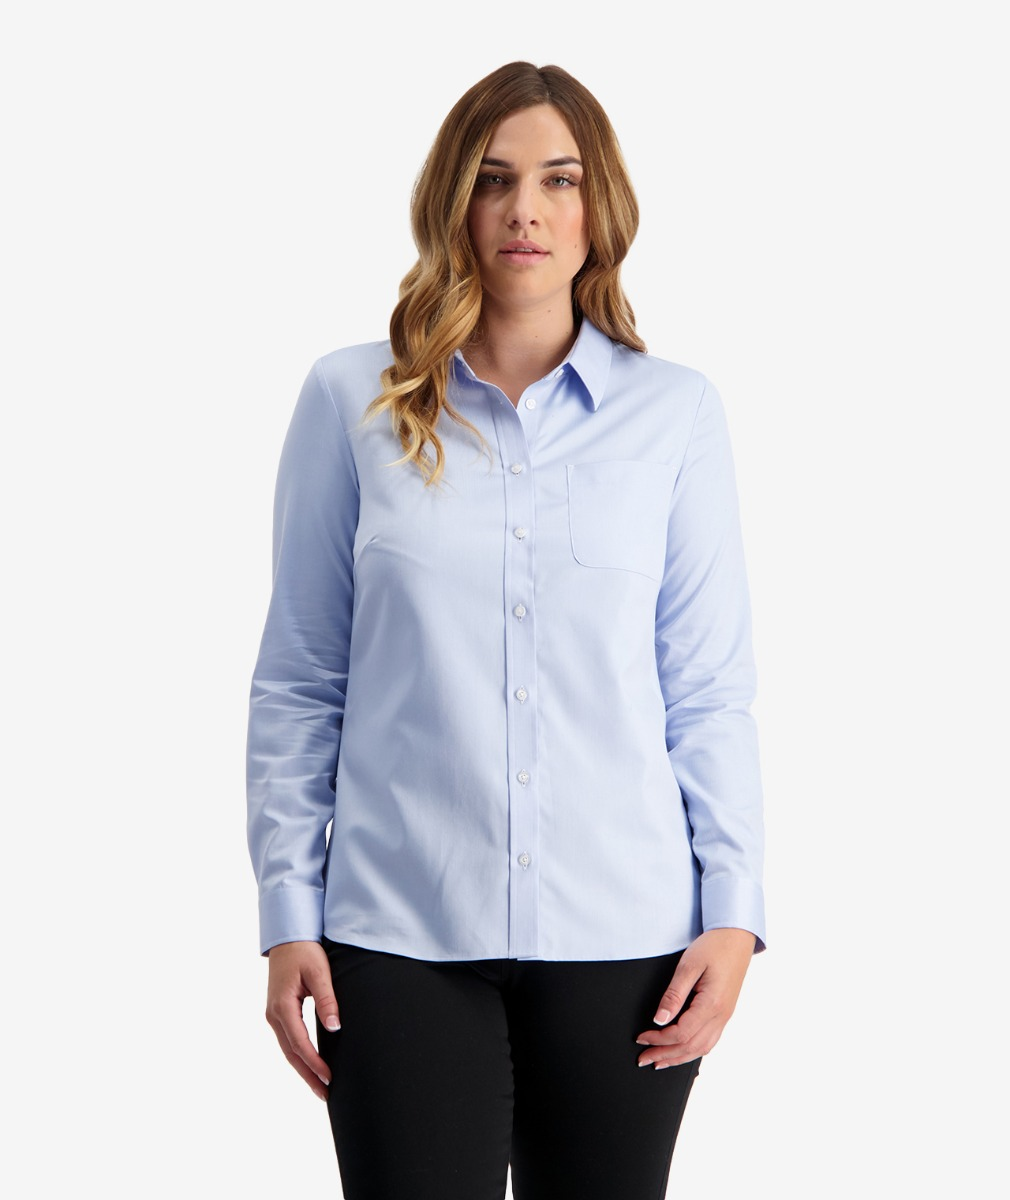 Swanndri Women's Avondale Long Sleeve Cotton Shirt